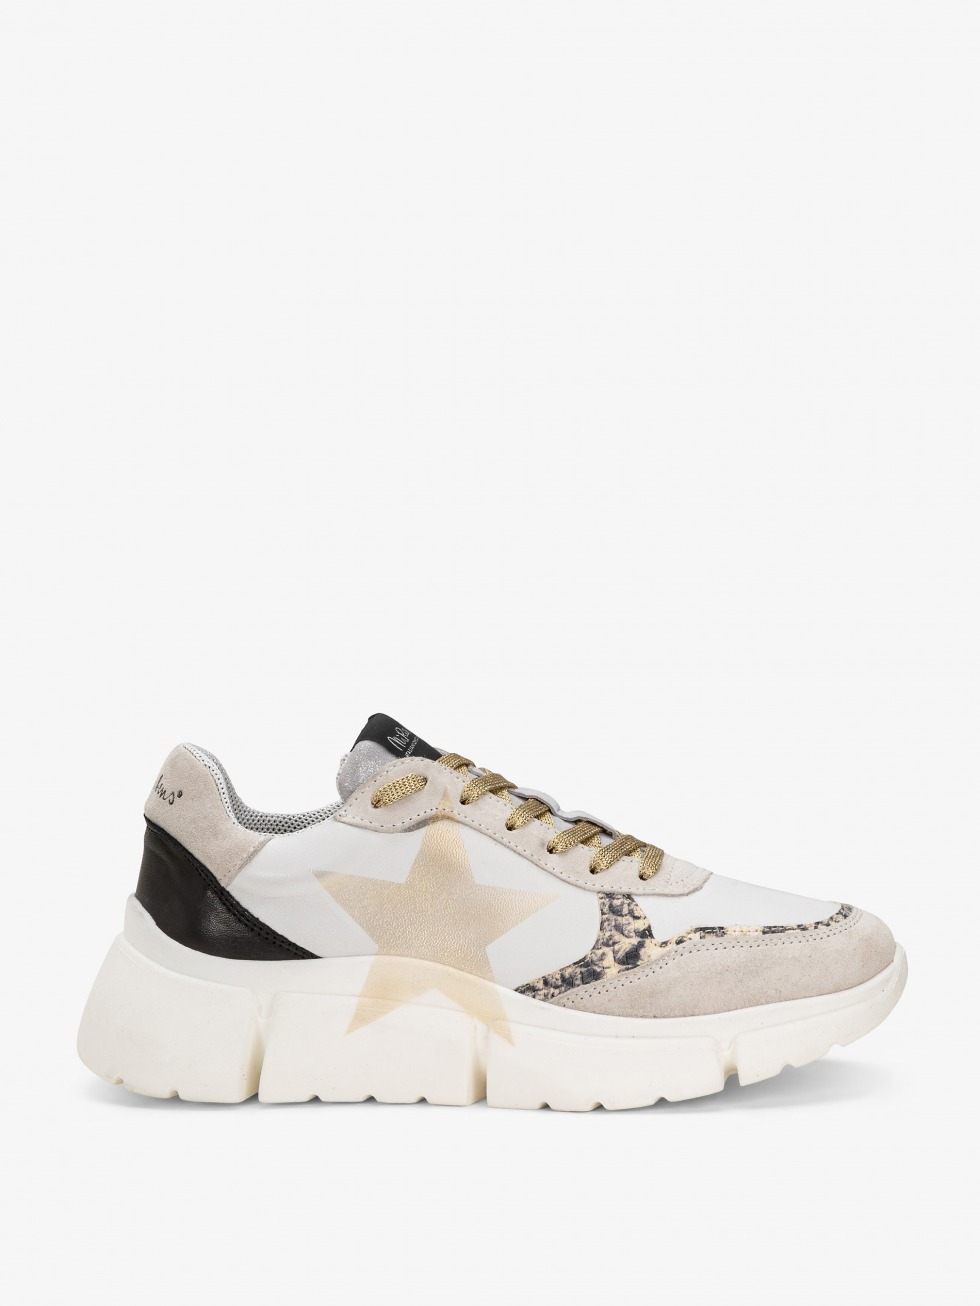 Stinger Chunky Sneakers - Urban Star